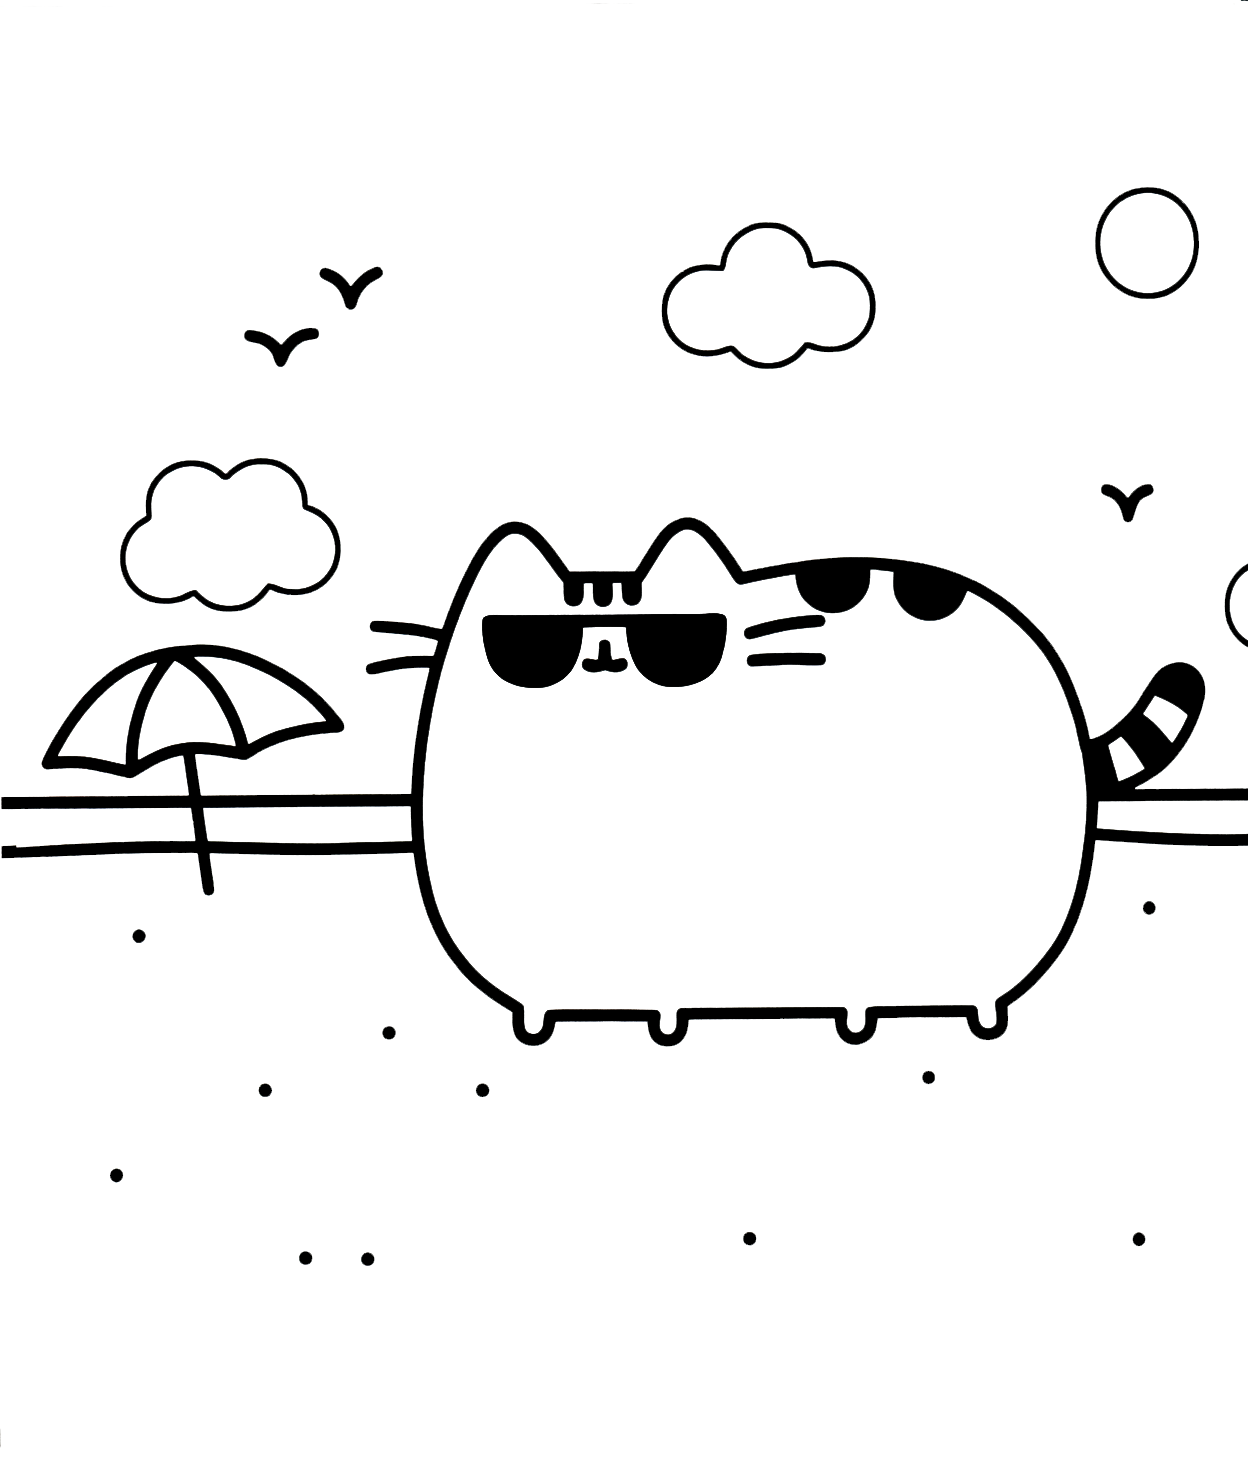 pusheen coloring pages printable Pusheen Coloring Pages   Best Coloring Pages For Kids pusheen coloring pages printable